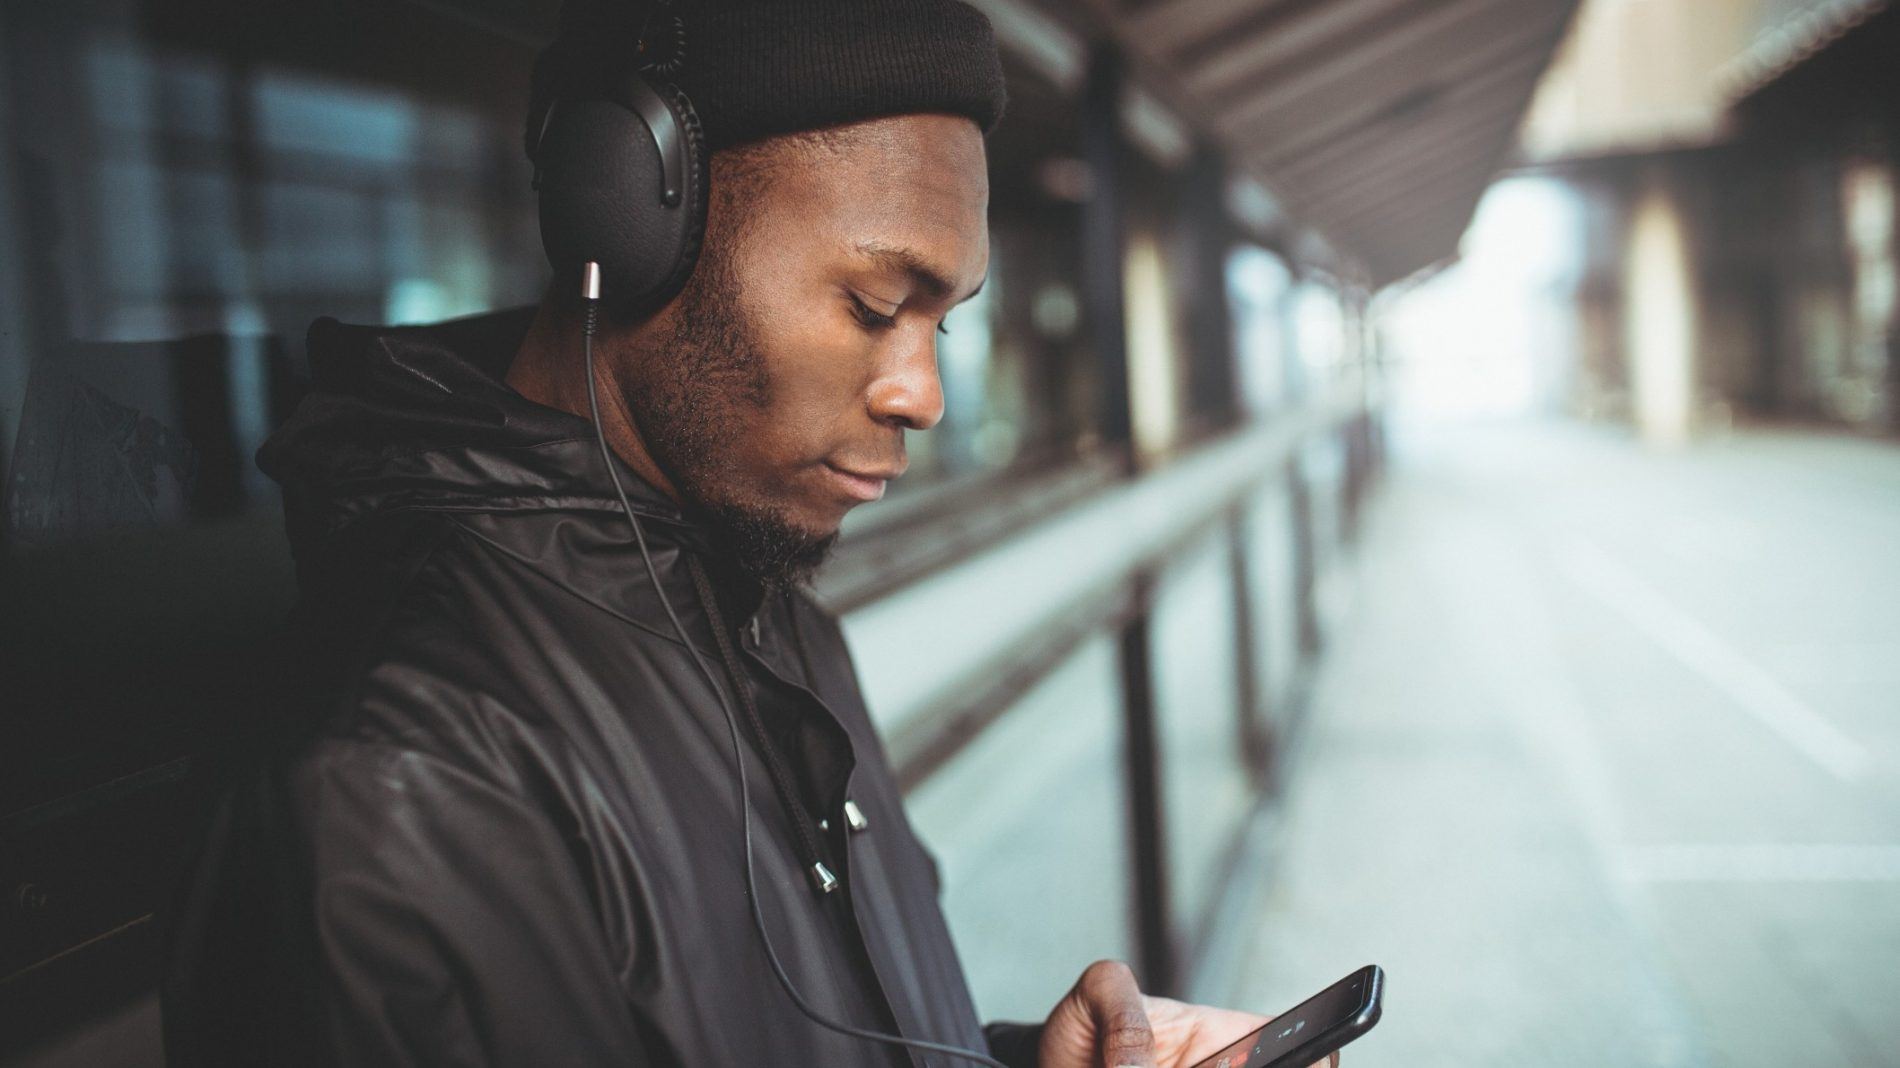 man-is-listening-to-music-with-his-smartphone_t20_vK06Jl